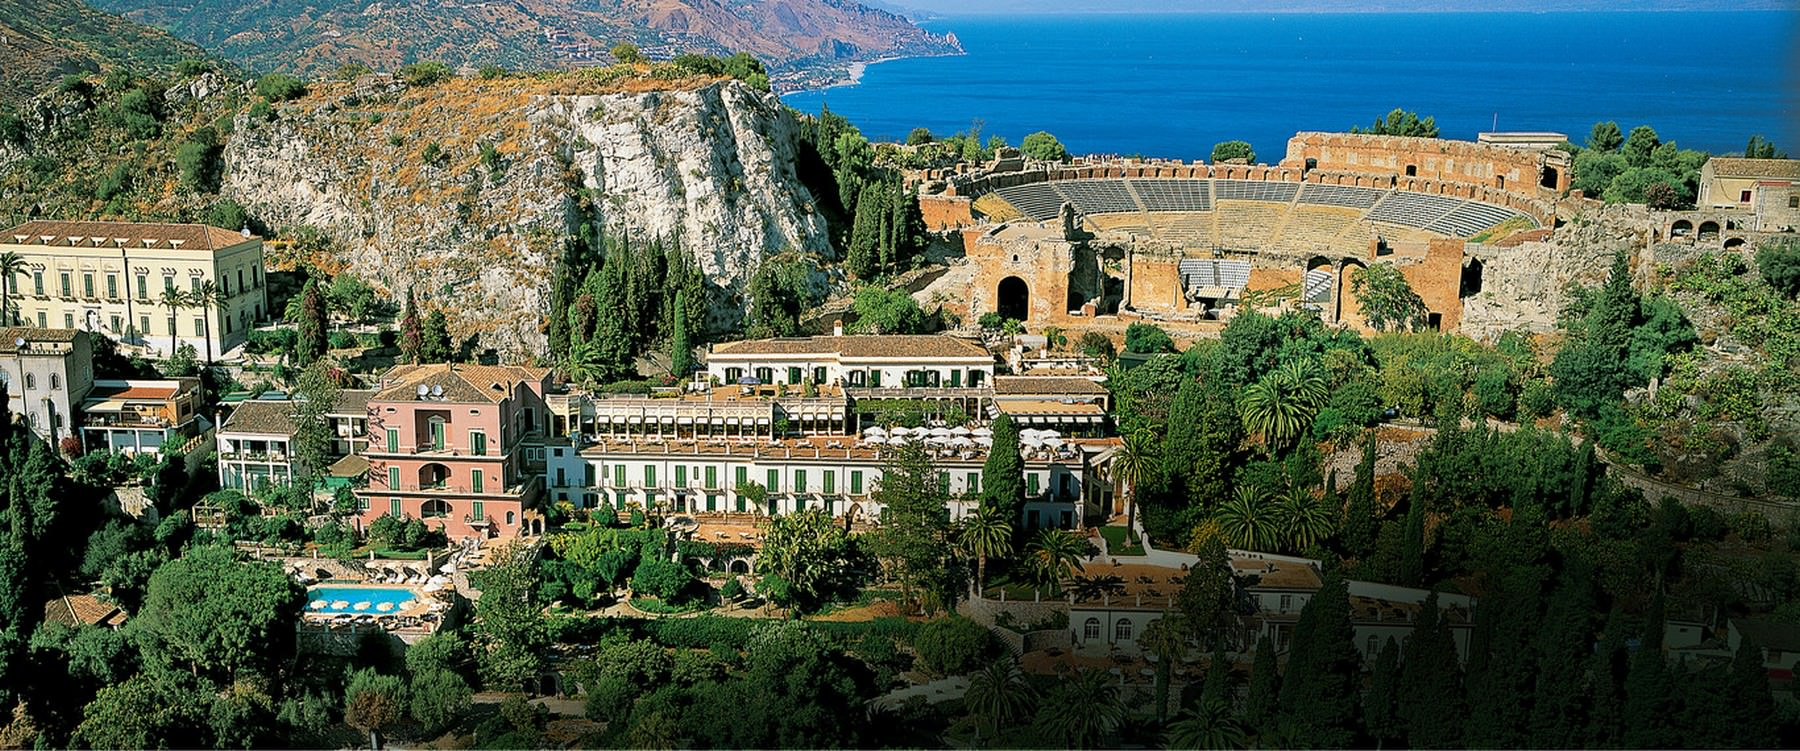 best hotels sicily - photo#4